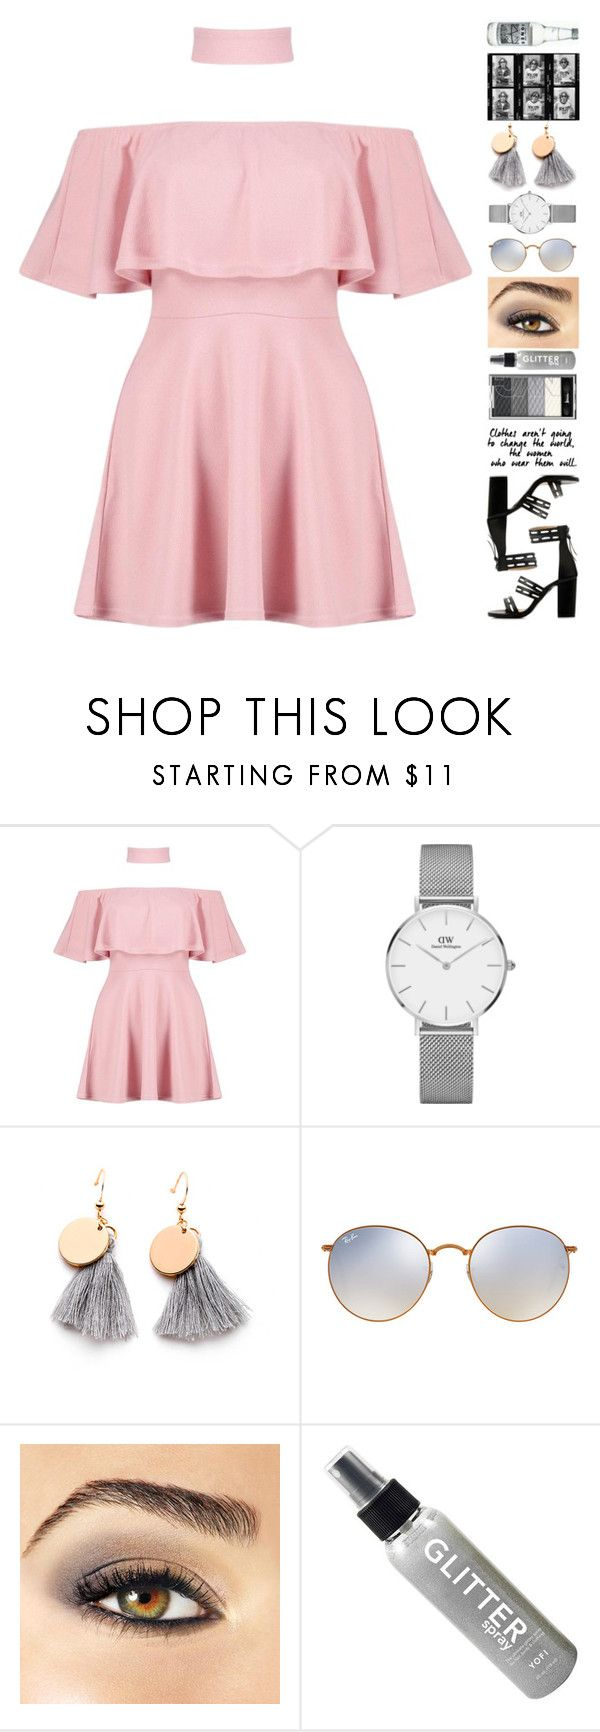 """Margarita"" by brie-the-pixie ❤ liked on Polyvore featuring Boohoo, Daniel Wellington, Ray-Ban and Avon"